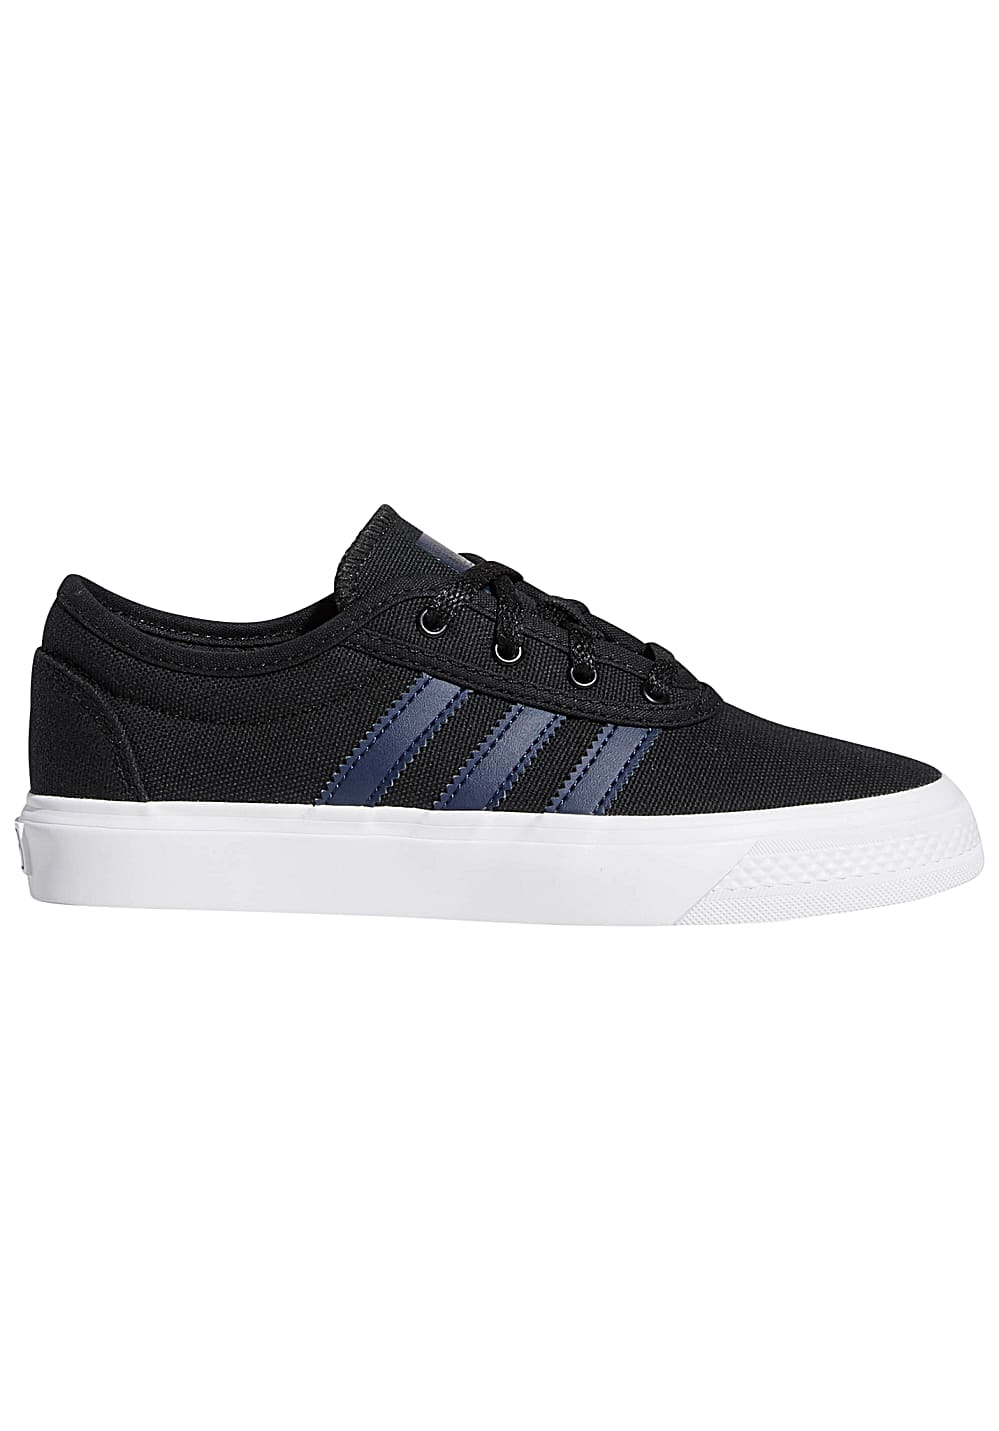 8d73bffea26 Previous. Next. Adidas Skateboarding. Adi-Ease - Sneakers. €54.95. incl.  VAT plus shipping costs. Black White